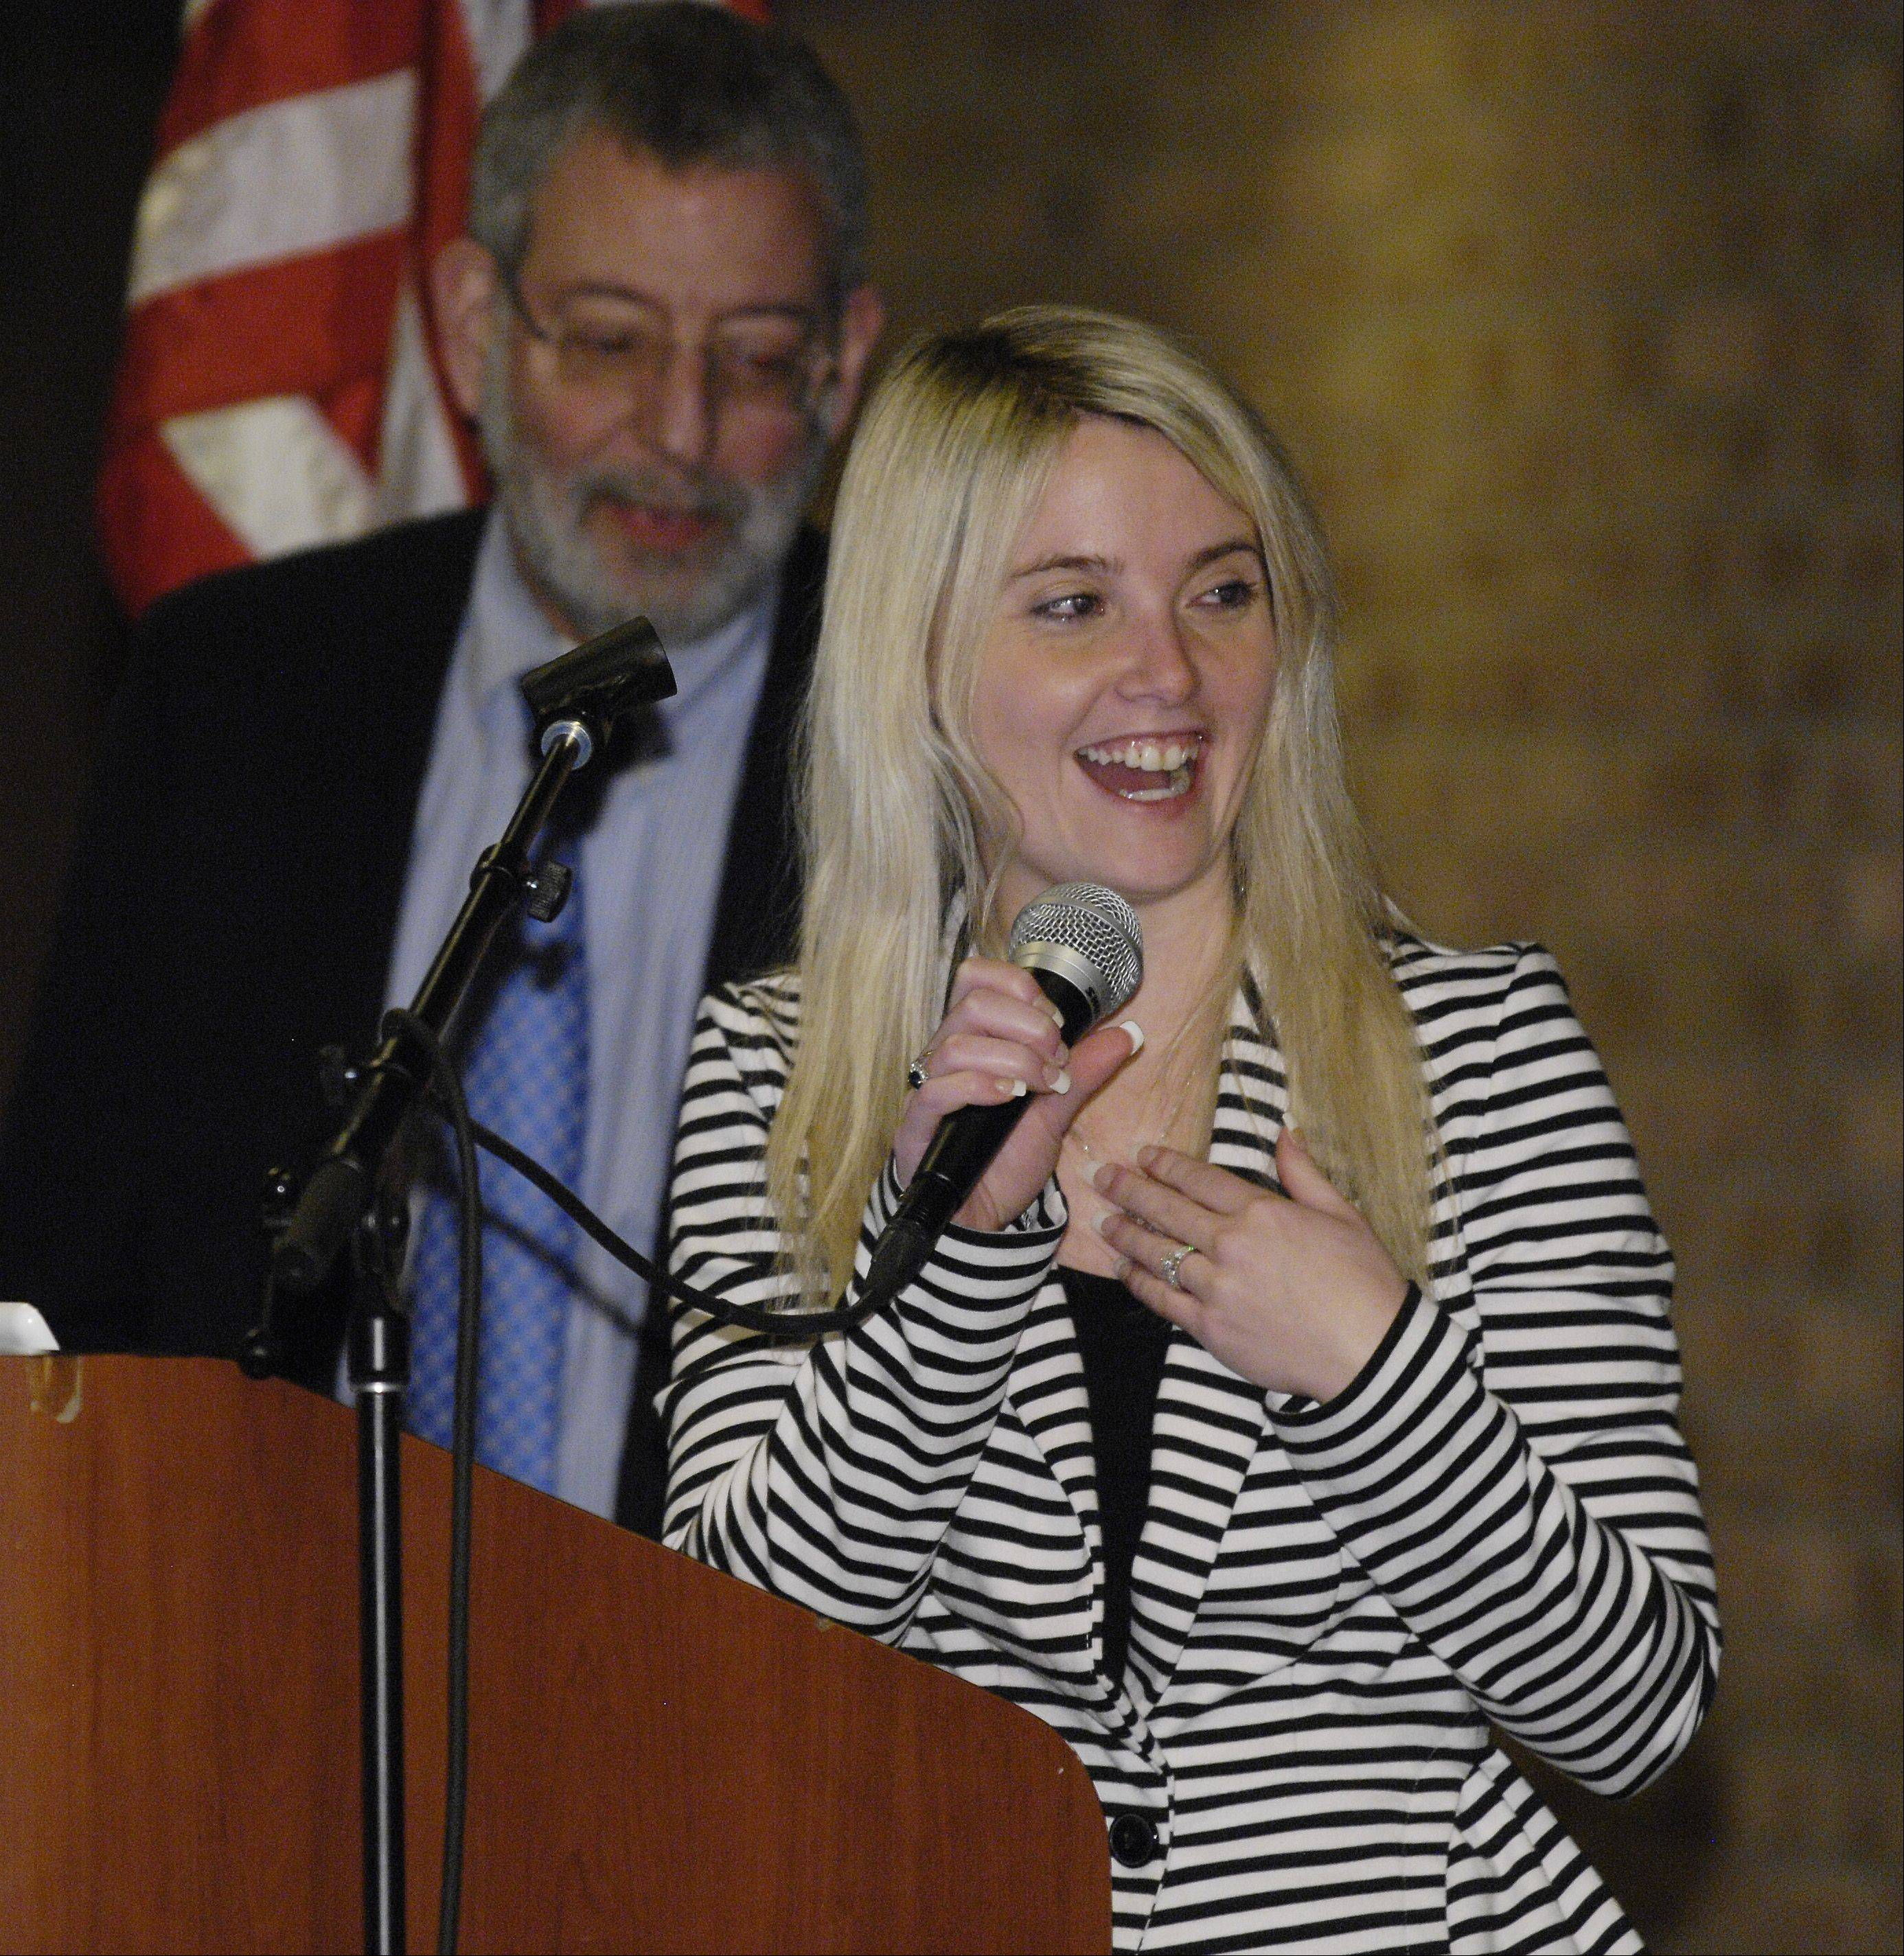 Erin Merryn speaks after receiving the �Champion for Children Award� from the Children�s Advocacy Center.